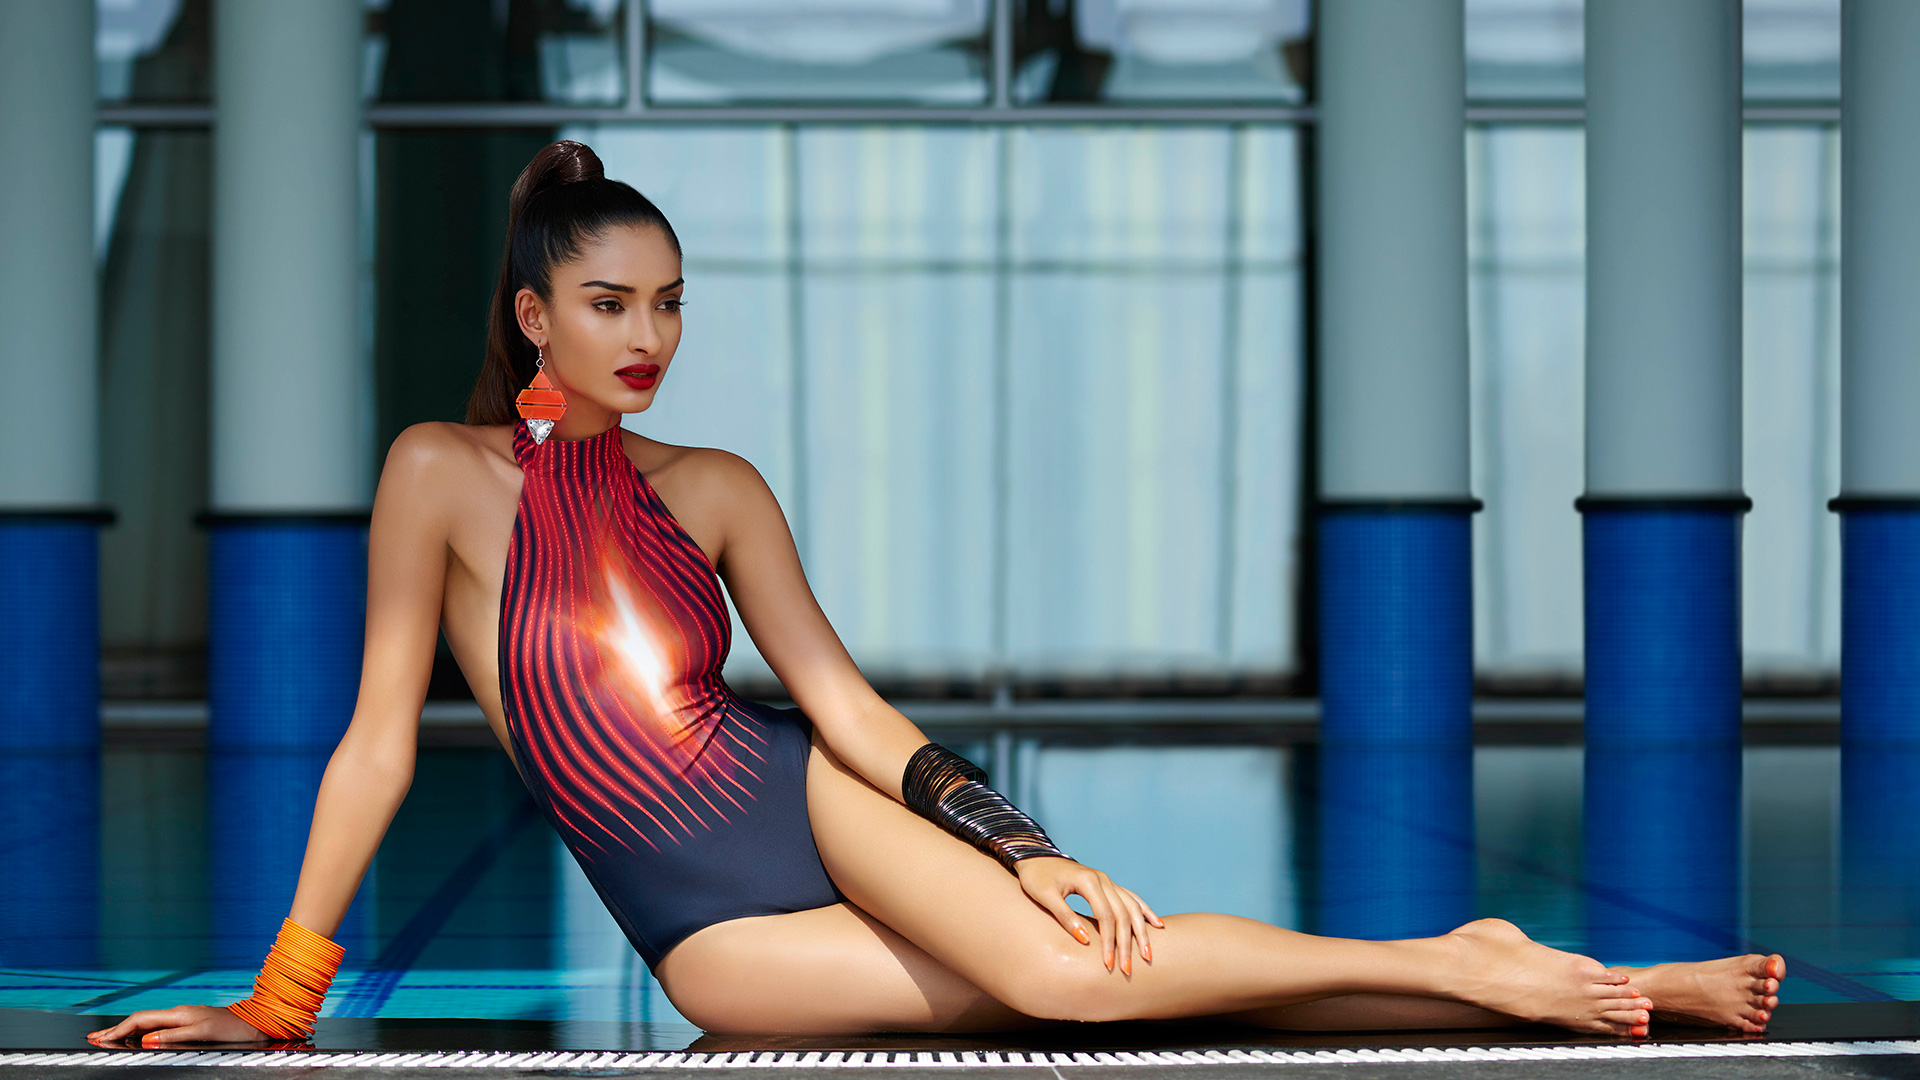 6 kingfisher models share their fitness rules for a fit body